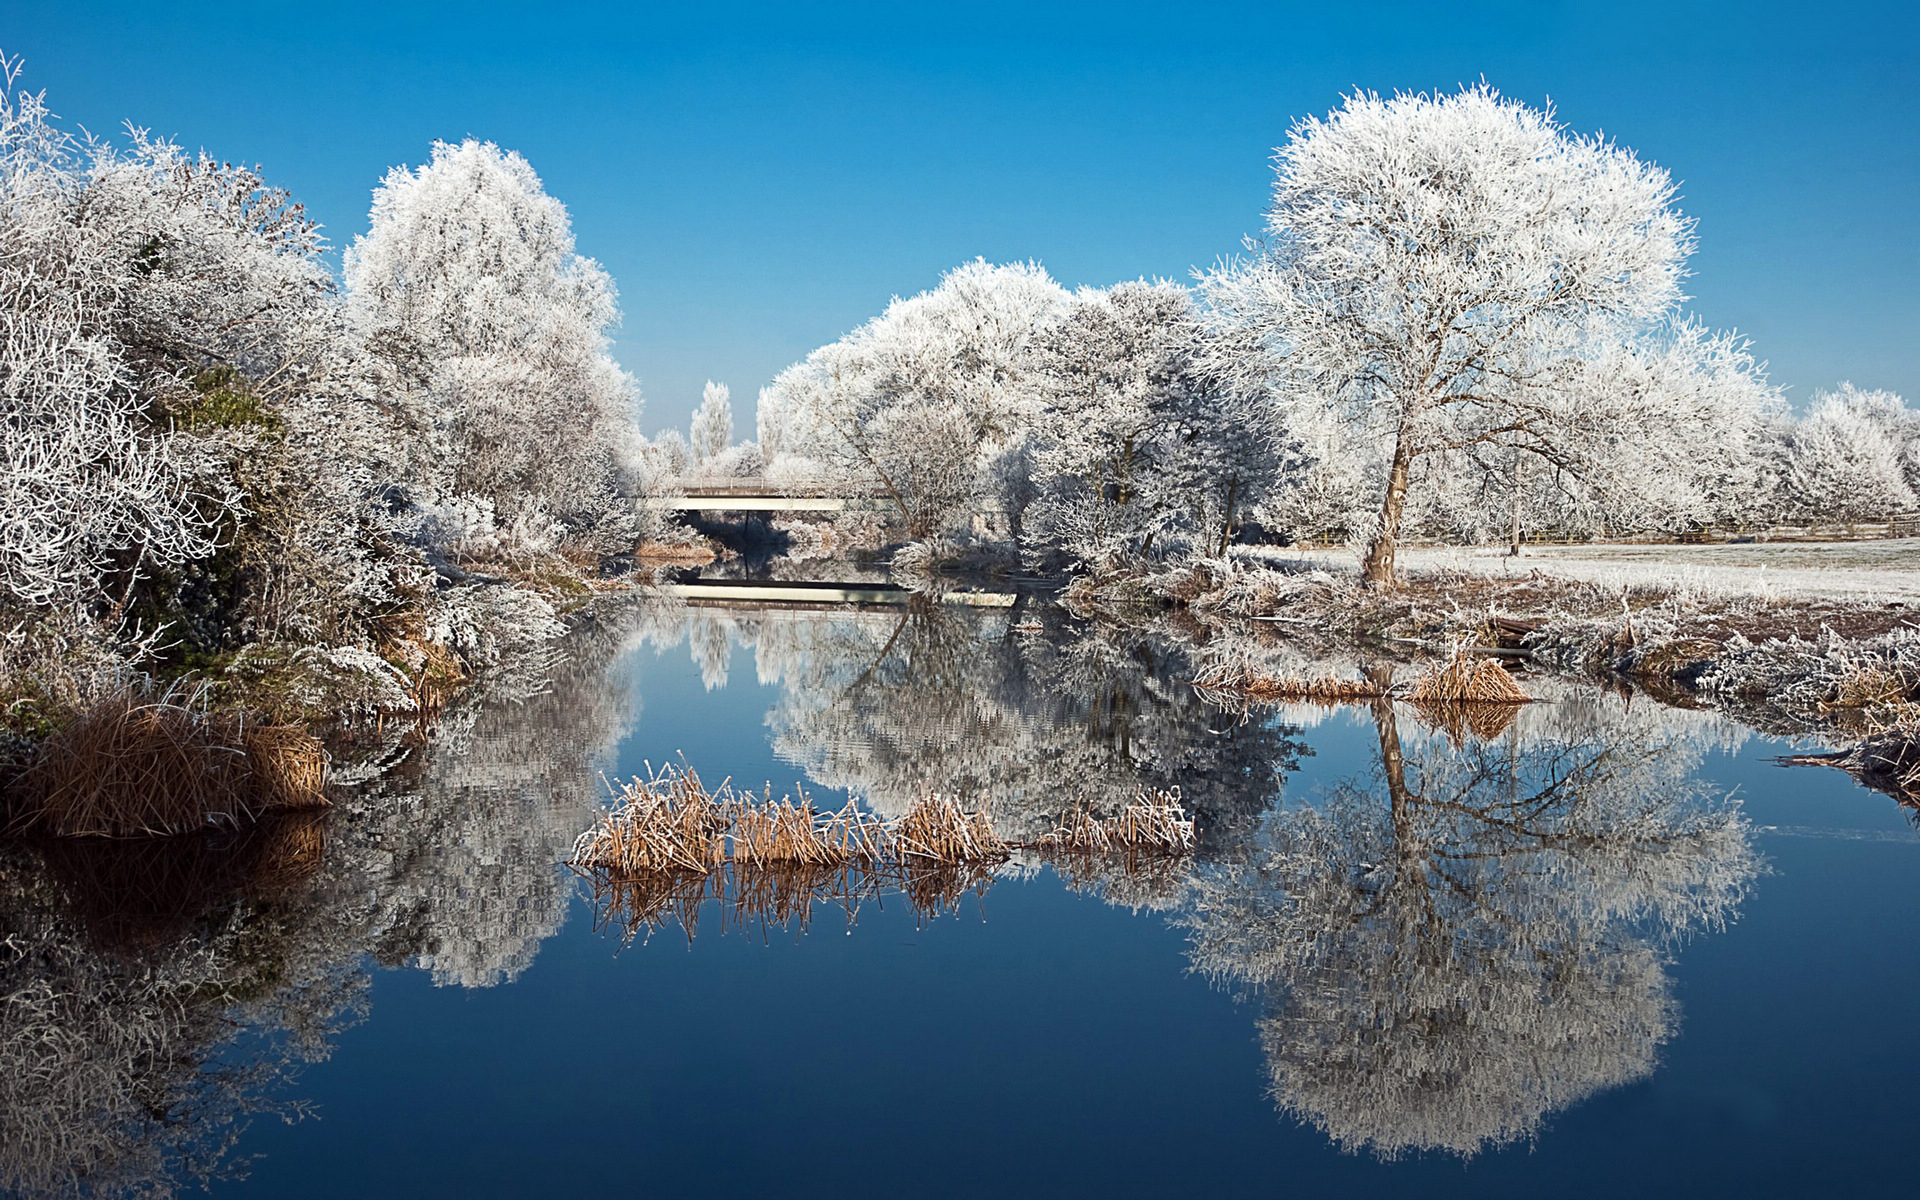 Snow Scenery Wallpaper   Viewing Gallery 1920x1200